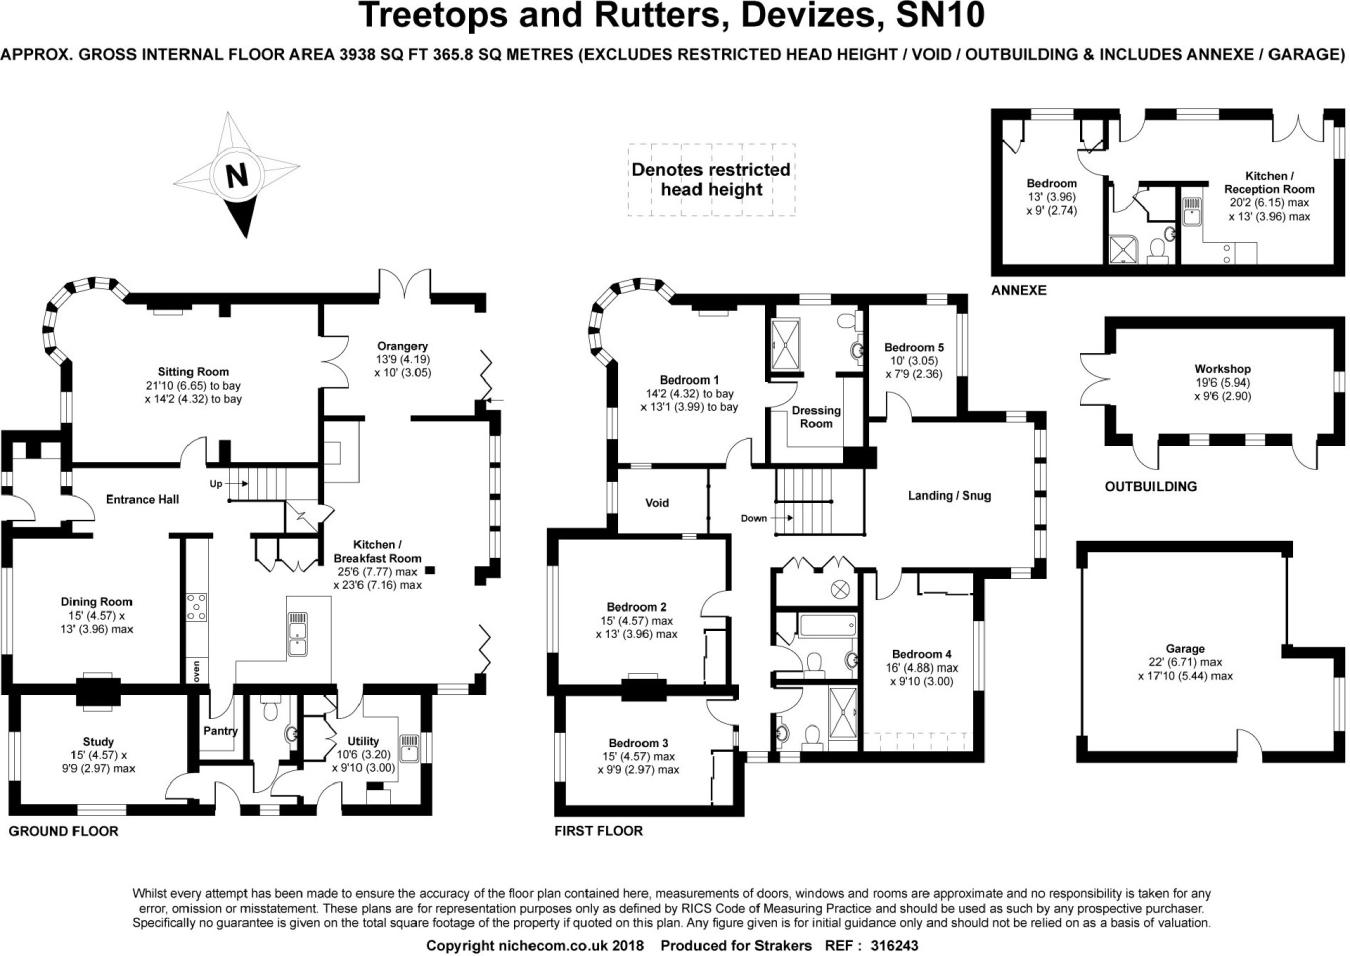 5 Bedroom House For Sale In The Fairway Devizes Wiltshire Sn10 Cost Of Rewiring A 2016 London